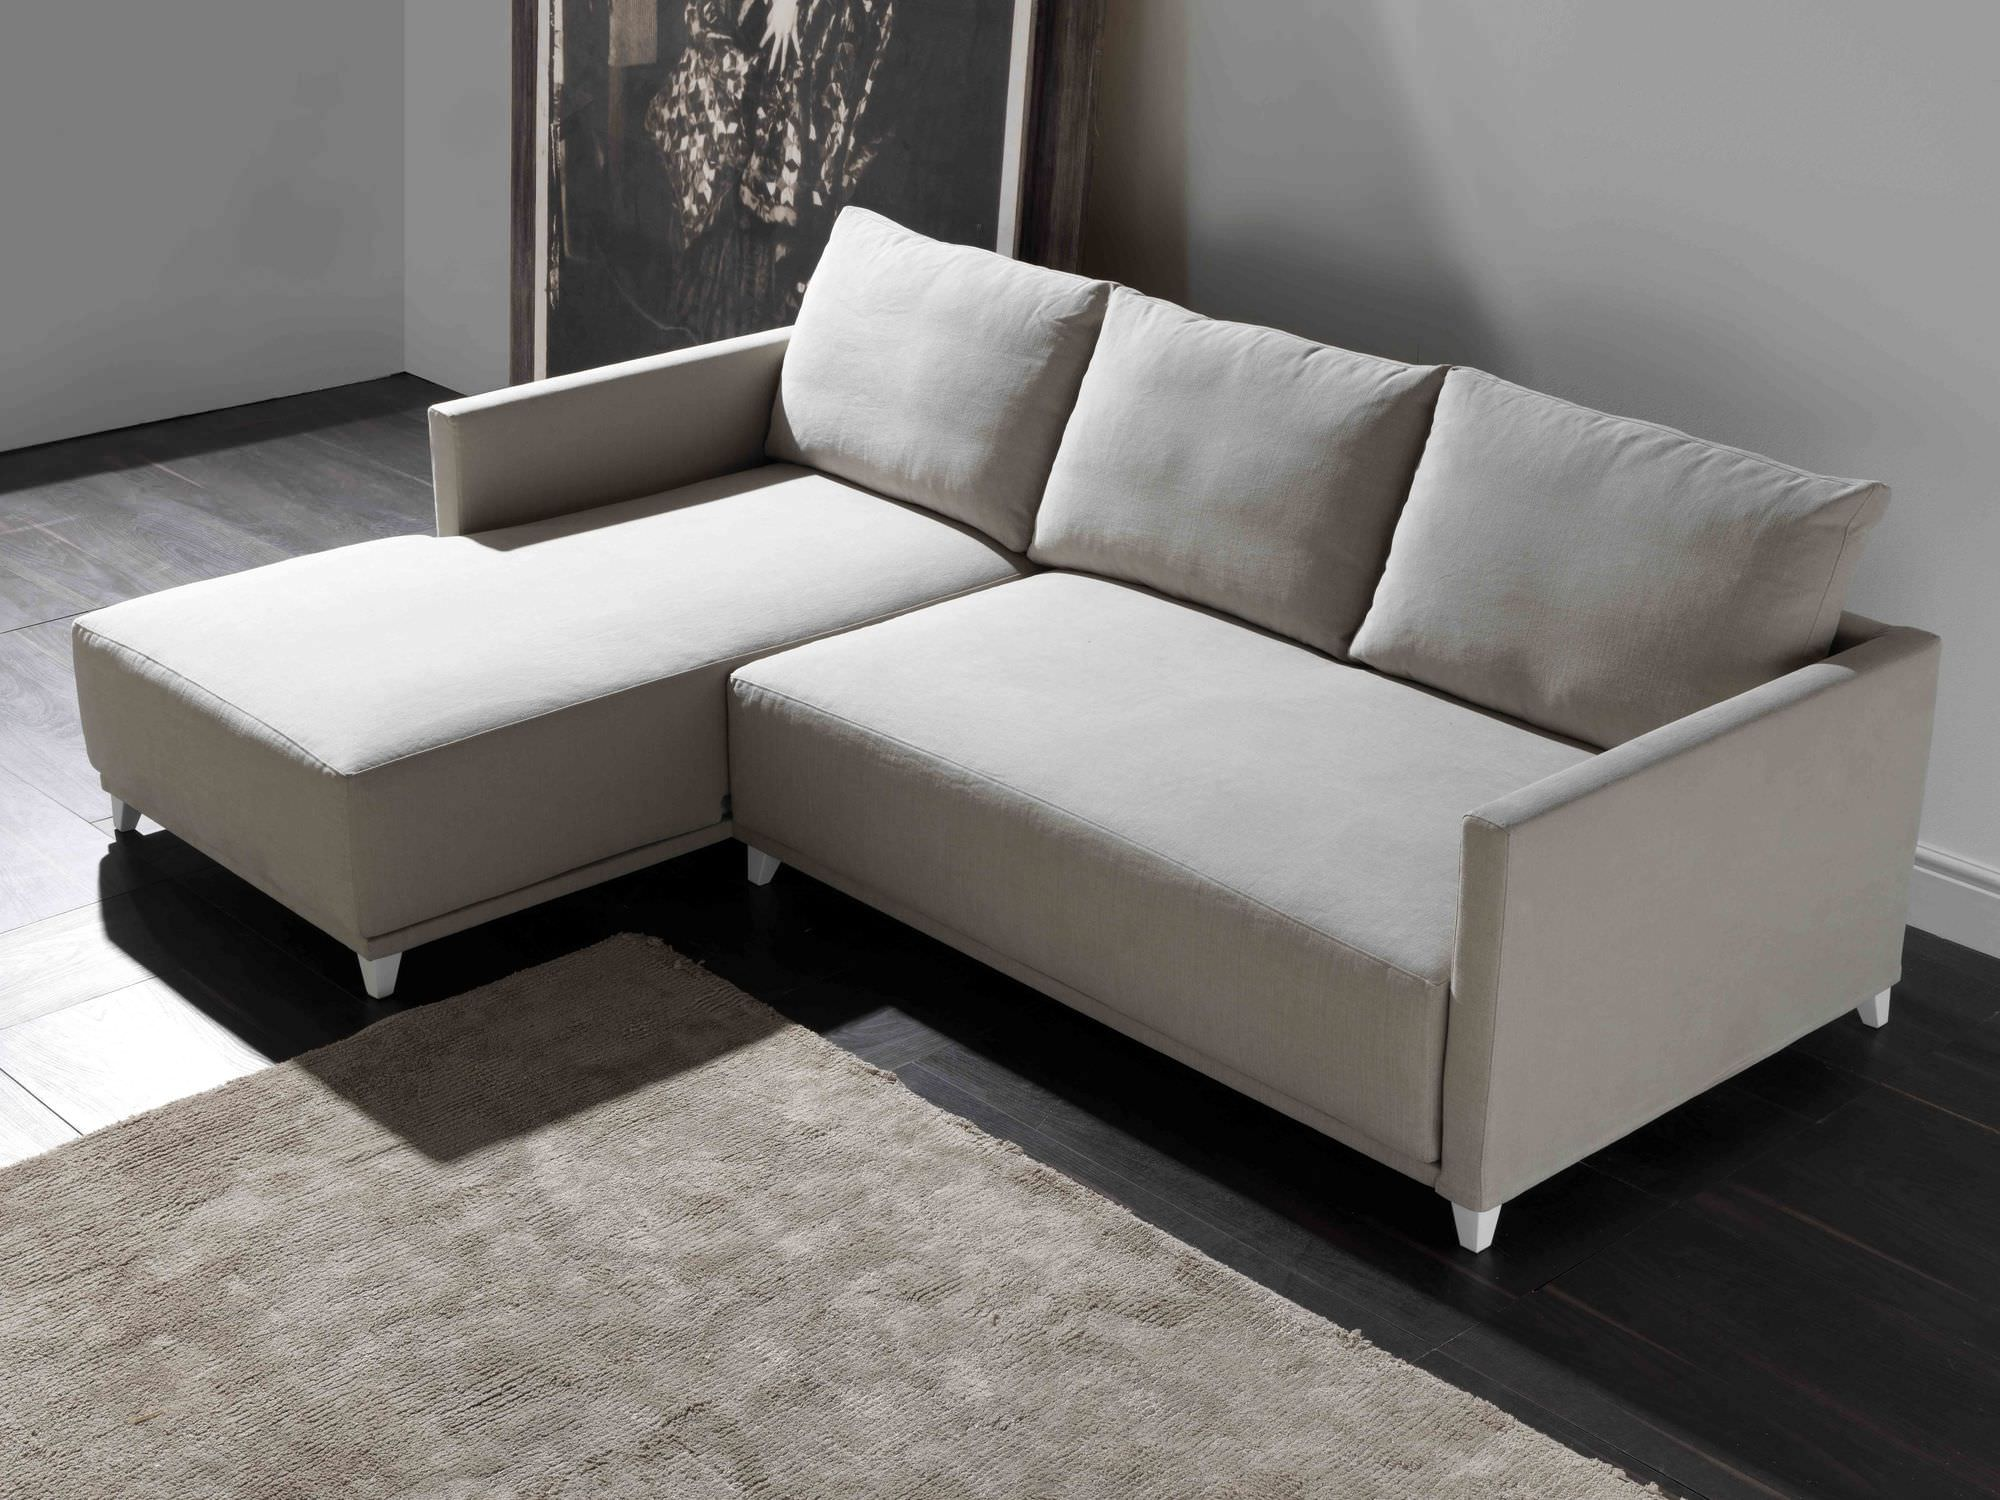 Corner Sofa Contemporary Leather 2 Person Noname